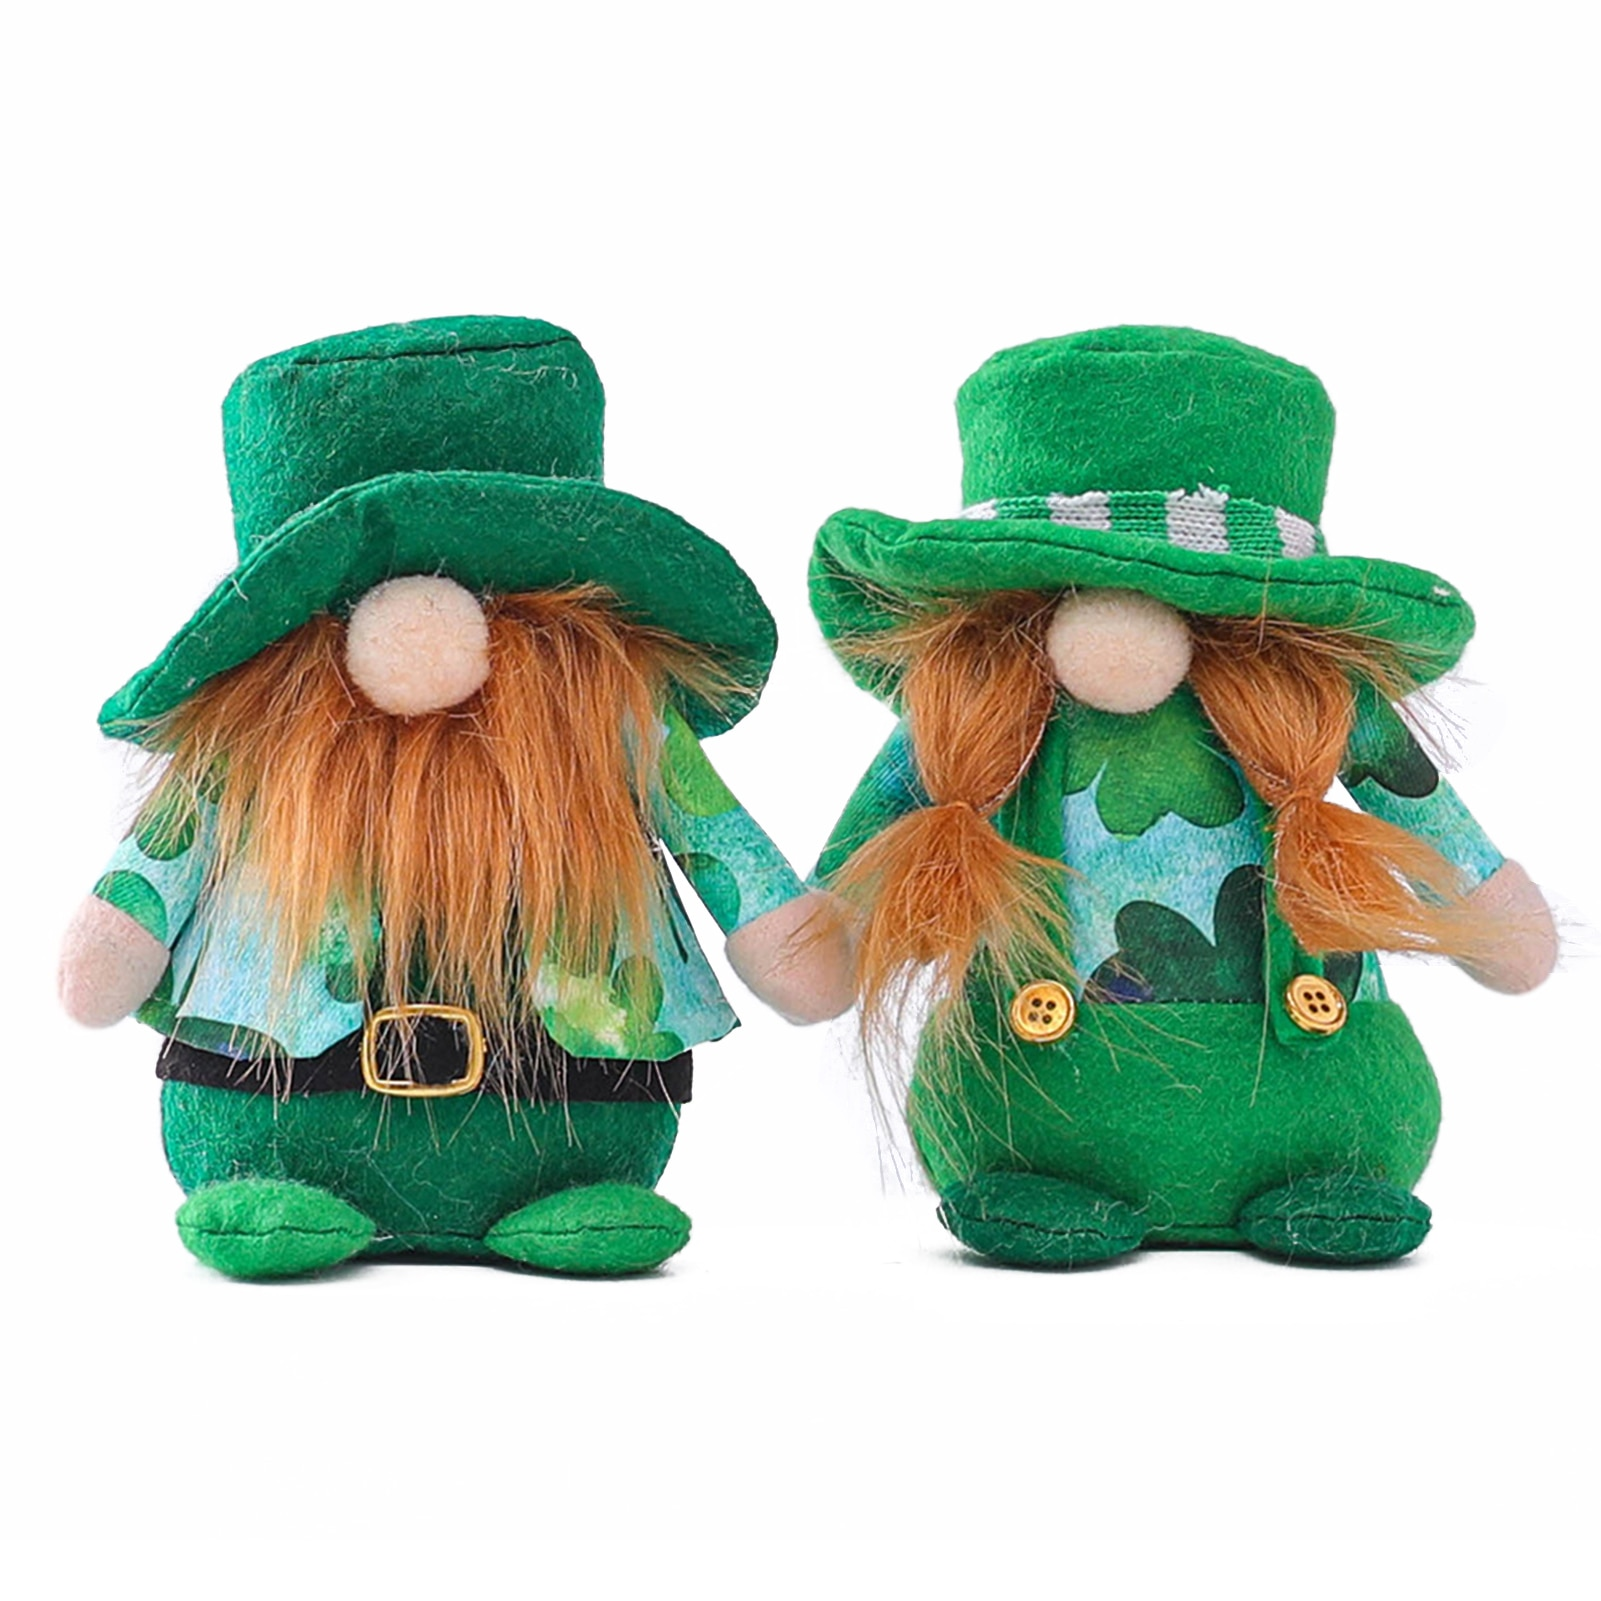 St Patricks Day Gnome Swedish Tomte Scandinavian Nisse Plushie Lucky toys brings good luck Lovely Plushie Ideal Gift for family